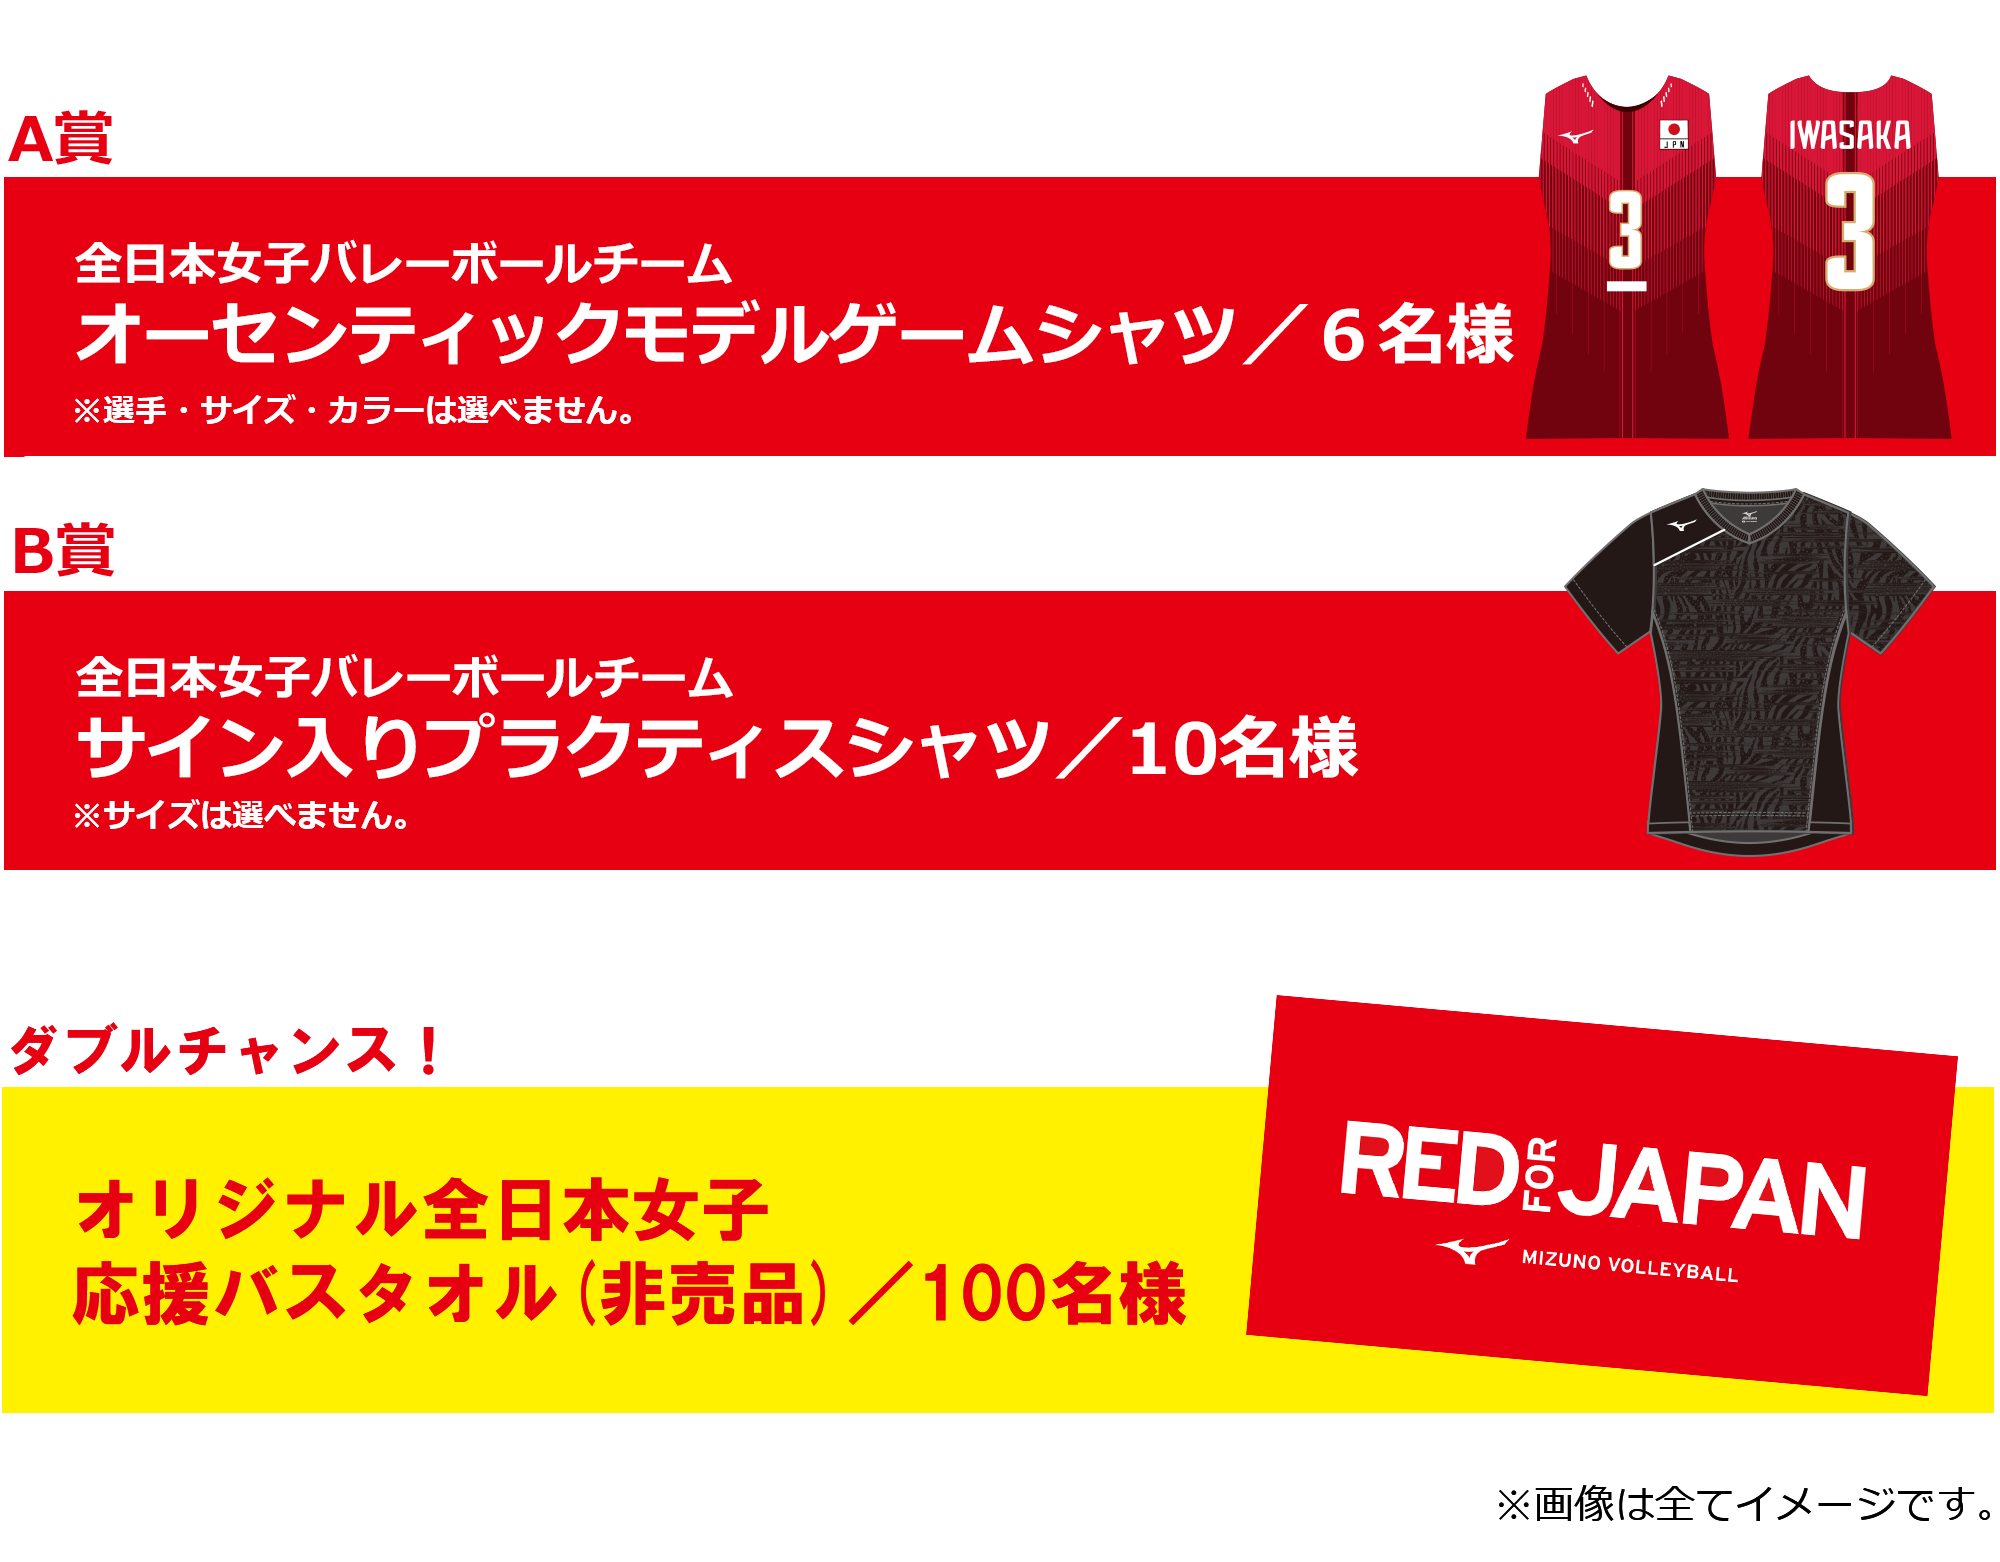 RED FOR JAPANキャンペーン